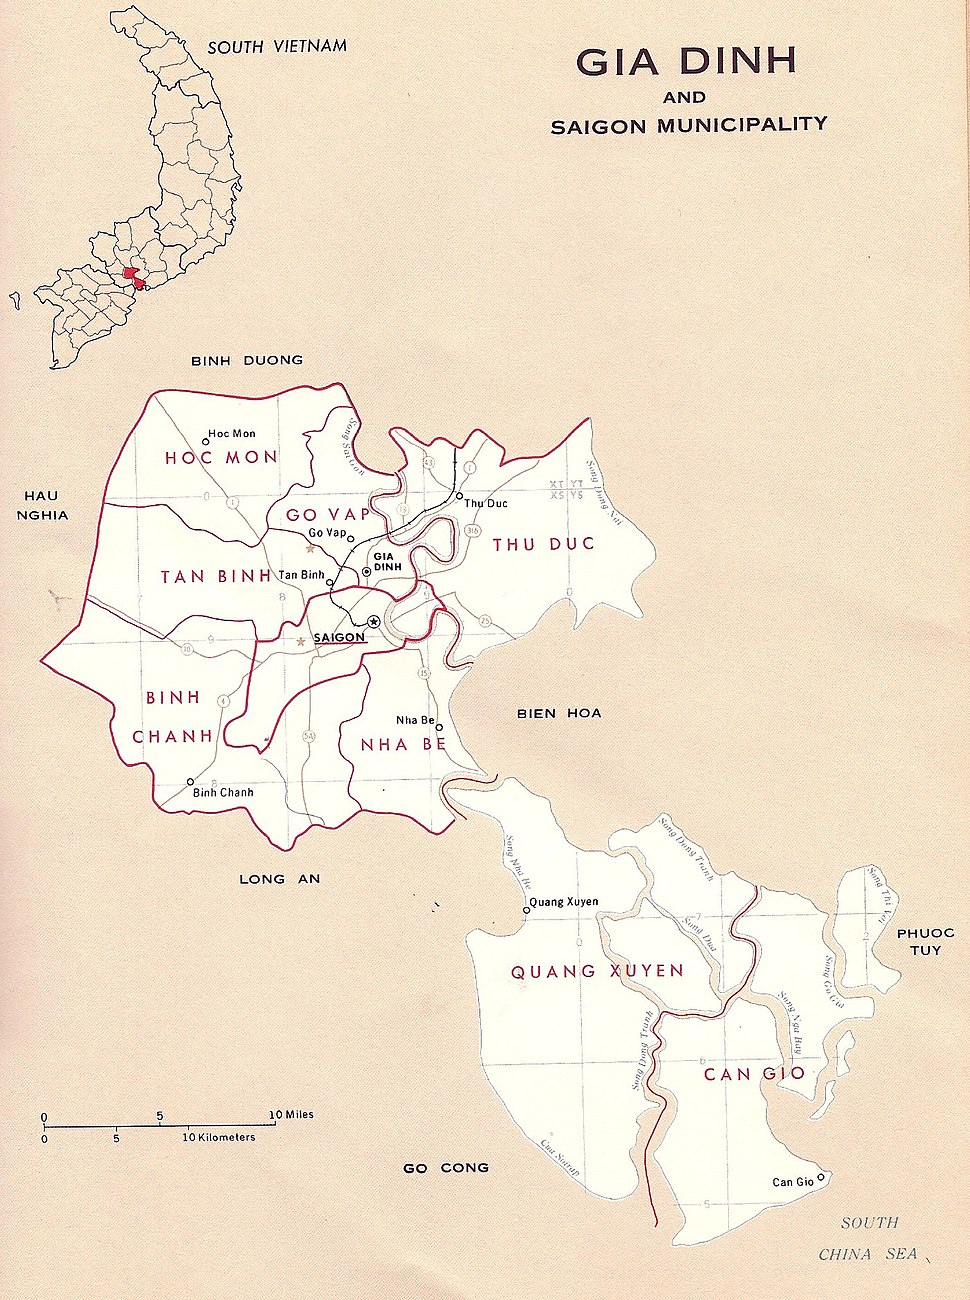 Gia-dinh Province